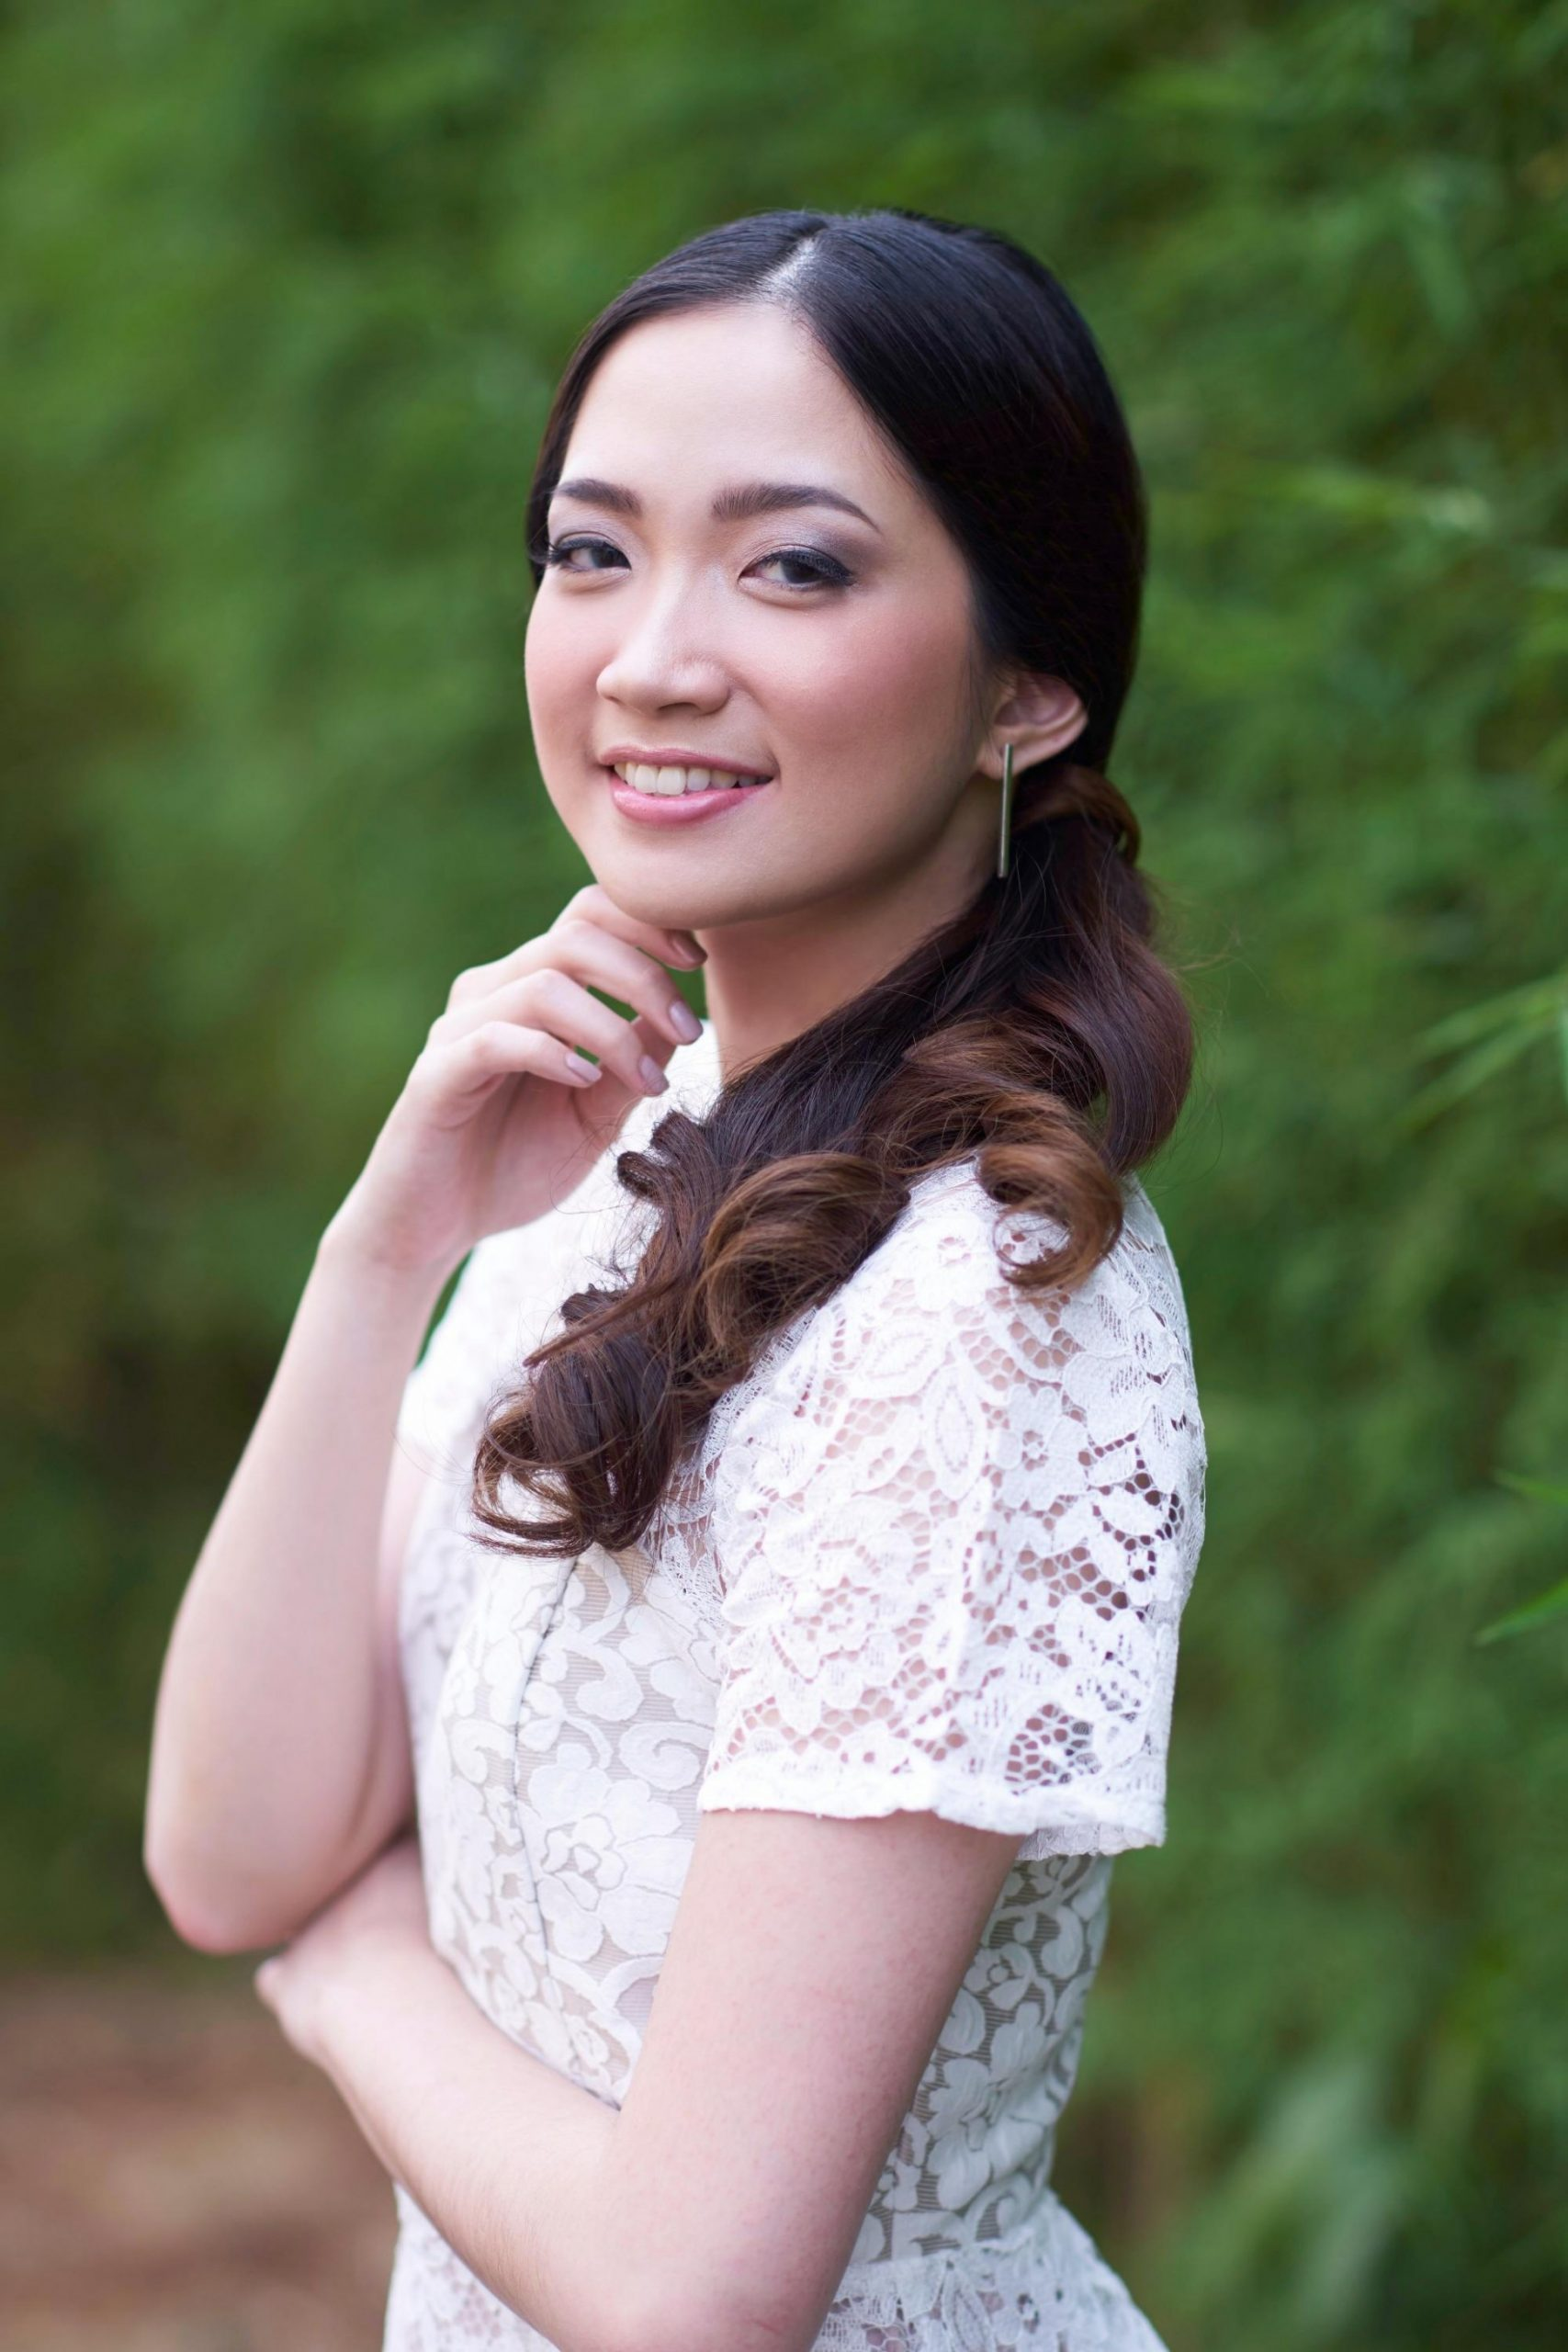 11 Best Graduation Hairstyles For Pinays In 11! Graduation Hairstyles For Curly Hair